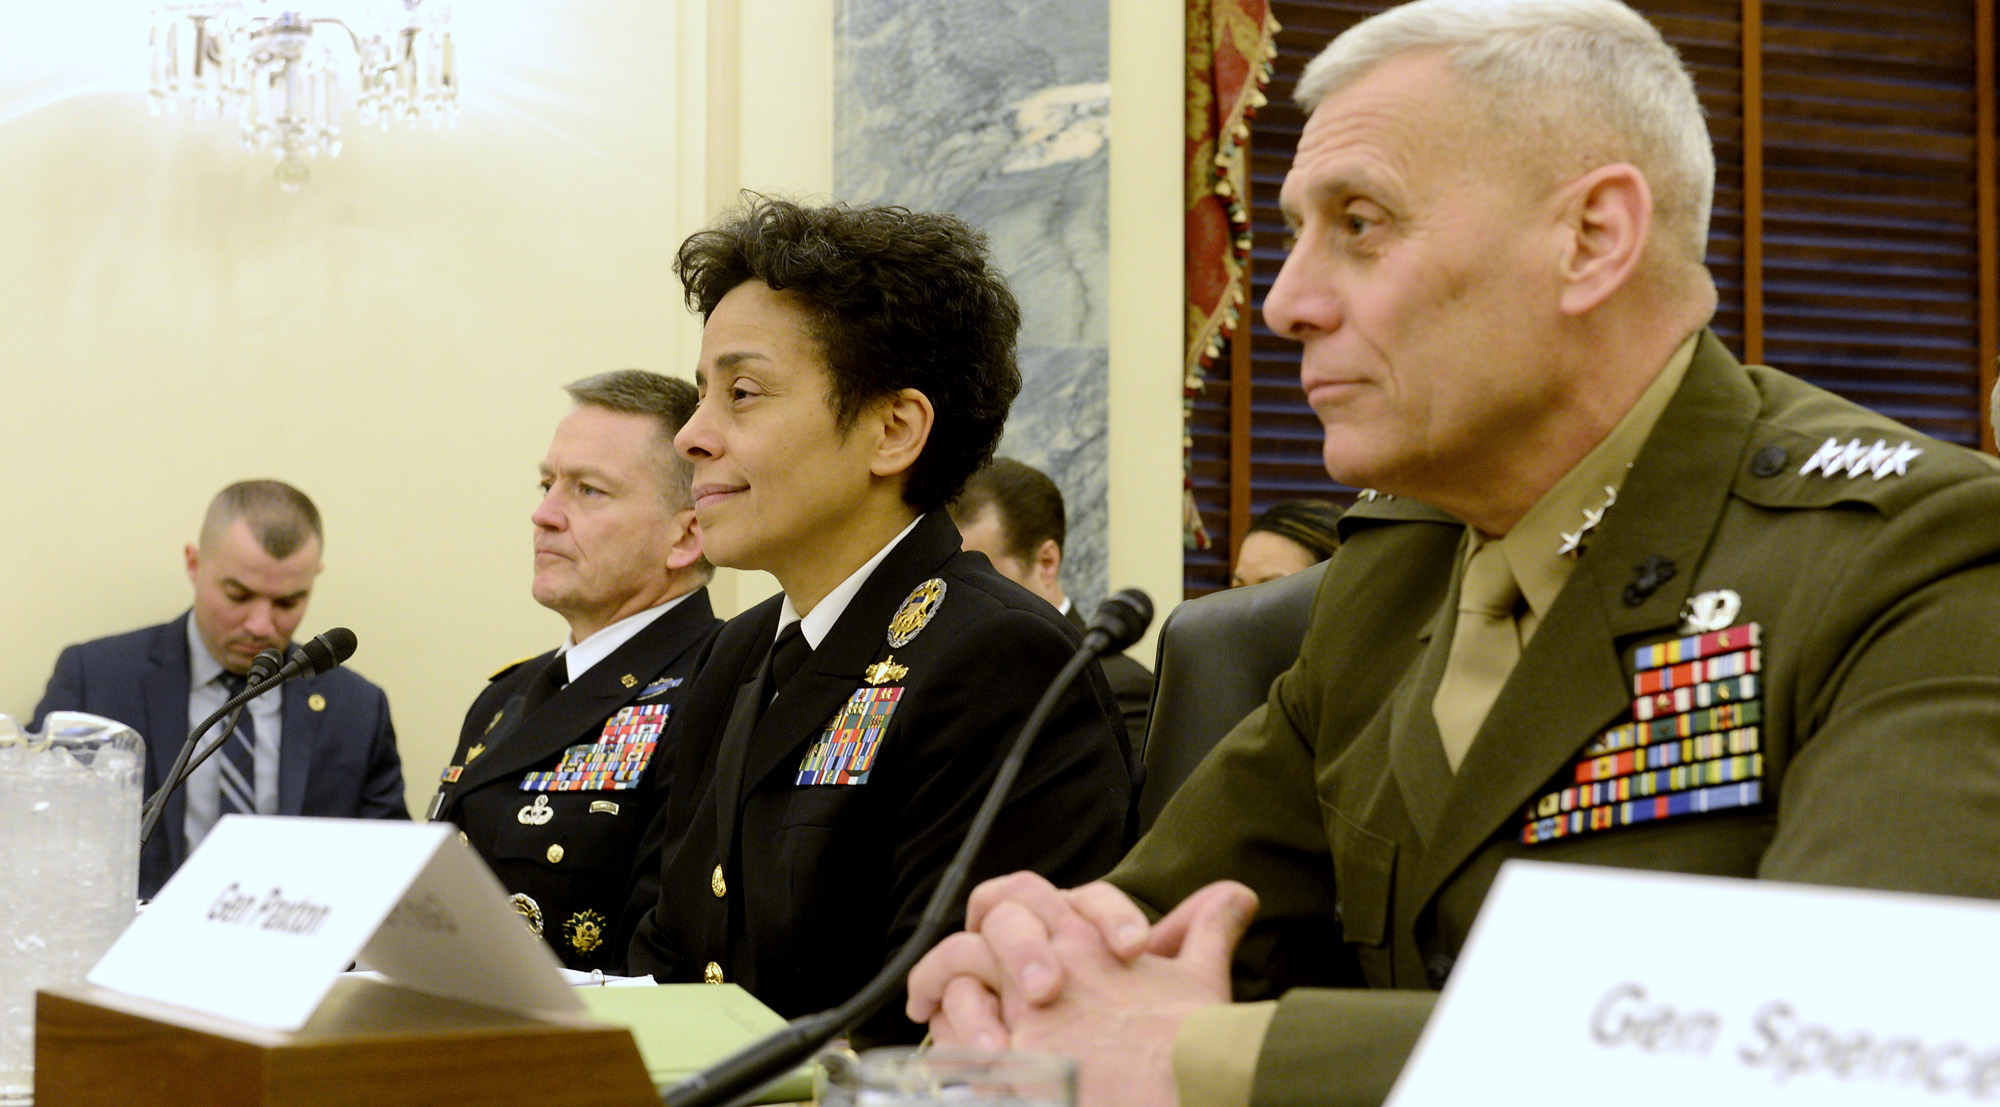 Vice Chief of Naval Operations Adm. Michelle Howard and Assistant Commandant of the Marine Corps Gen. John Paxton testified at the Senate Armed Services Committee on Wednesday, March 25 2015 US Navy Photo